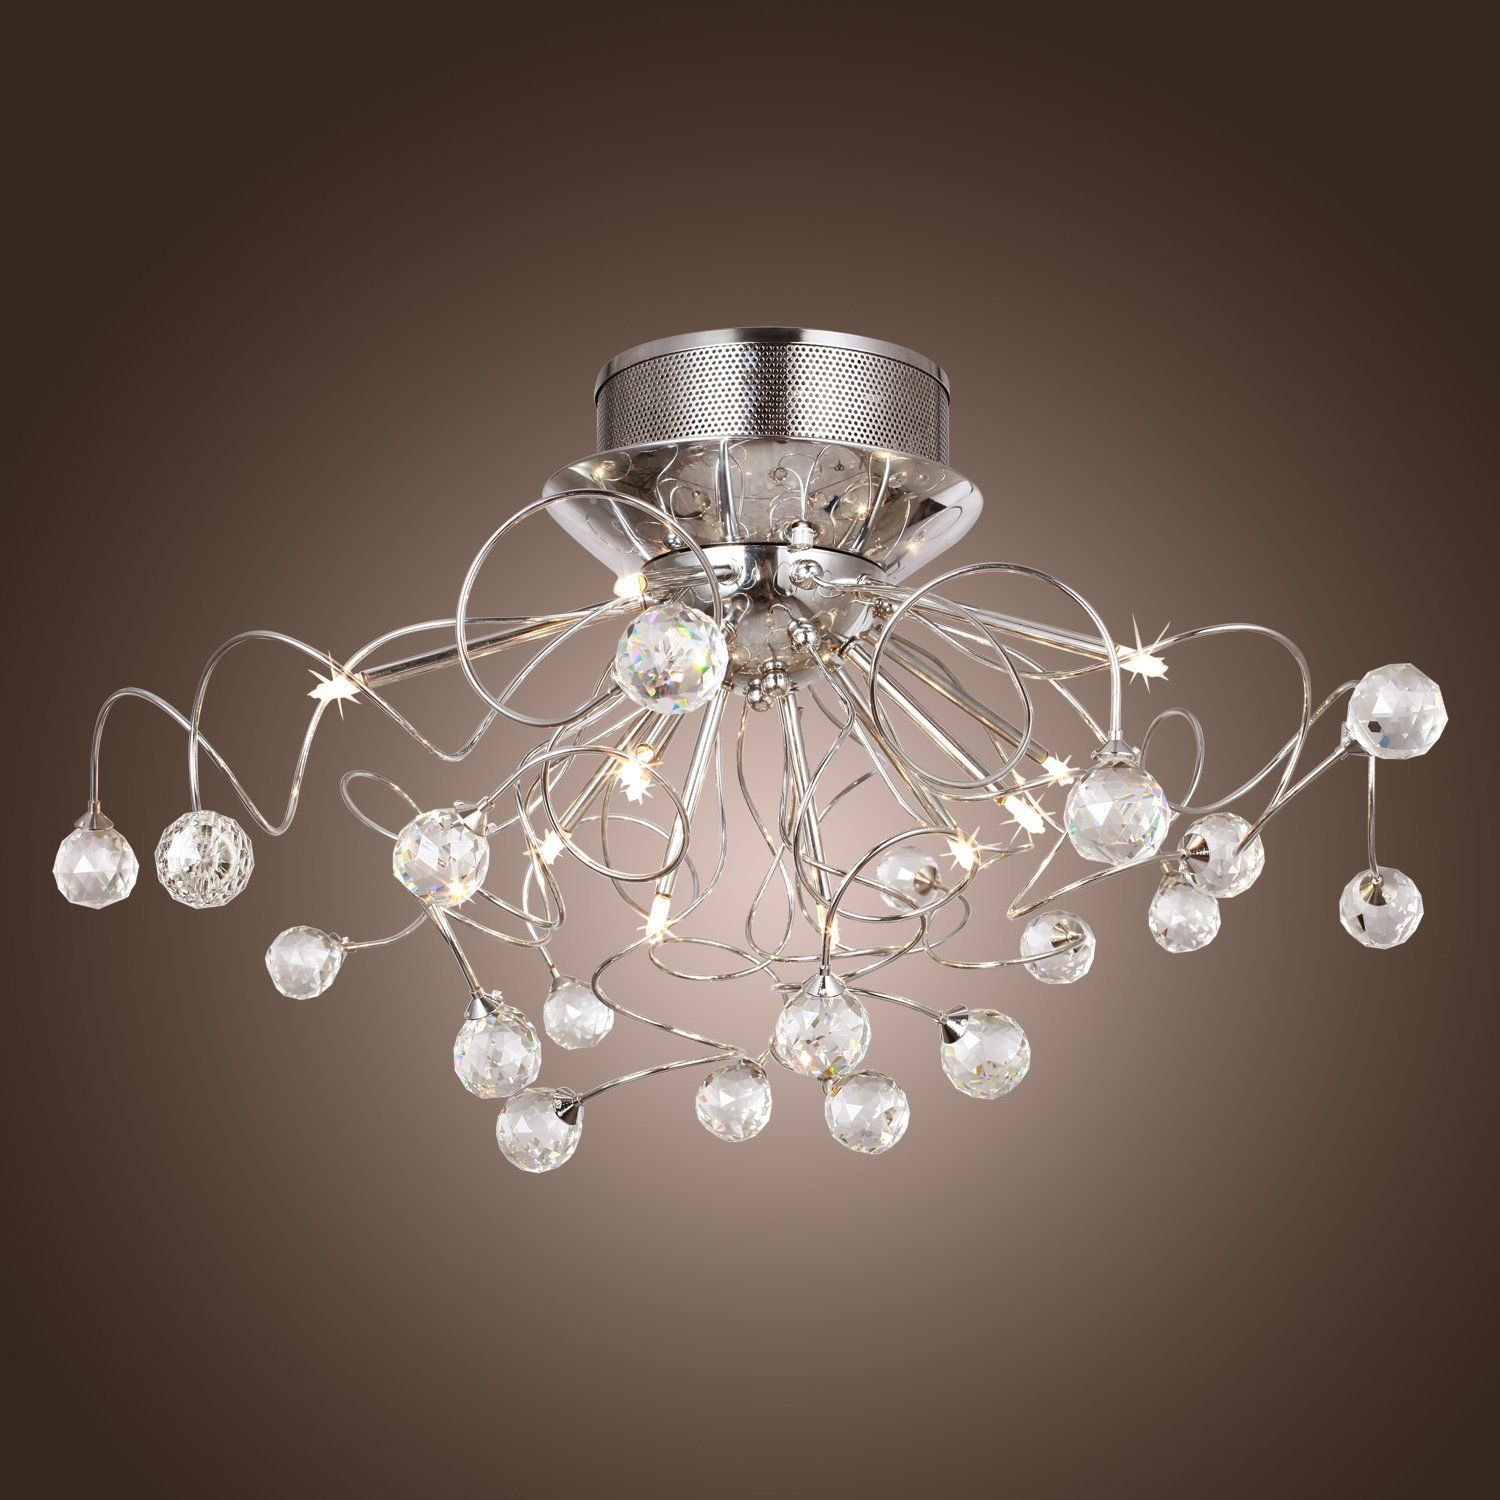 Lightinthebox modern crystal chandelier with 11 lights chrom flush lightinthebox modern crystal chandelier with 11 lights chrom flush mount chandeliers modern ceiling light fixture for hallway entry bedroom arubaitofo Image collections